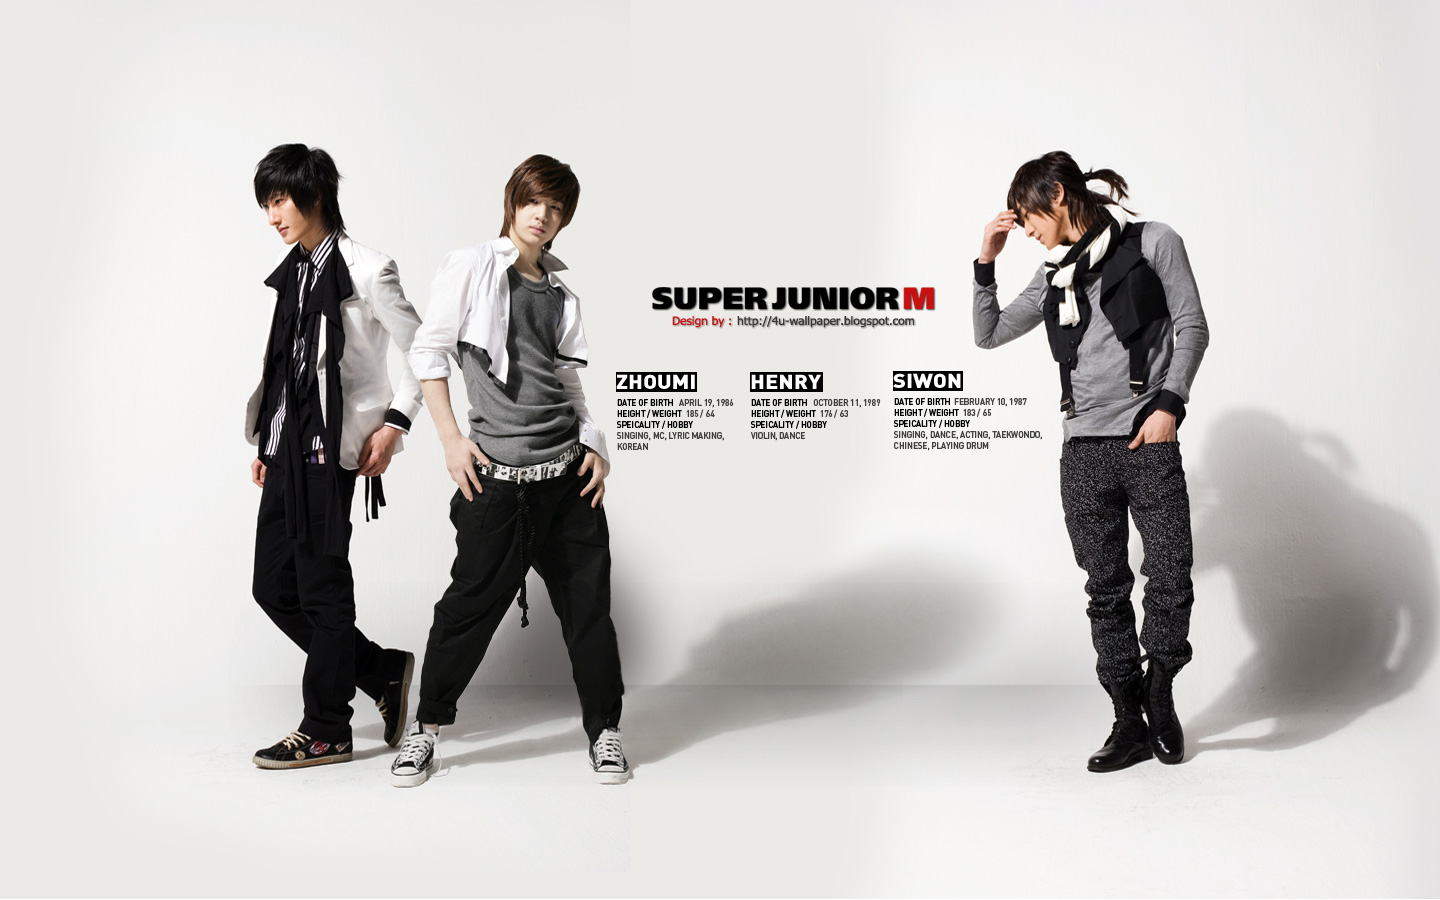 Wallpaper Super Junior M The First Album ME